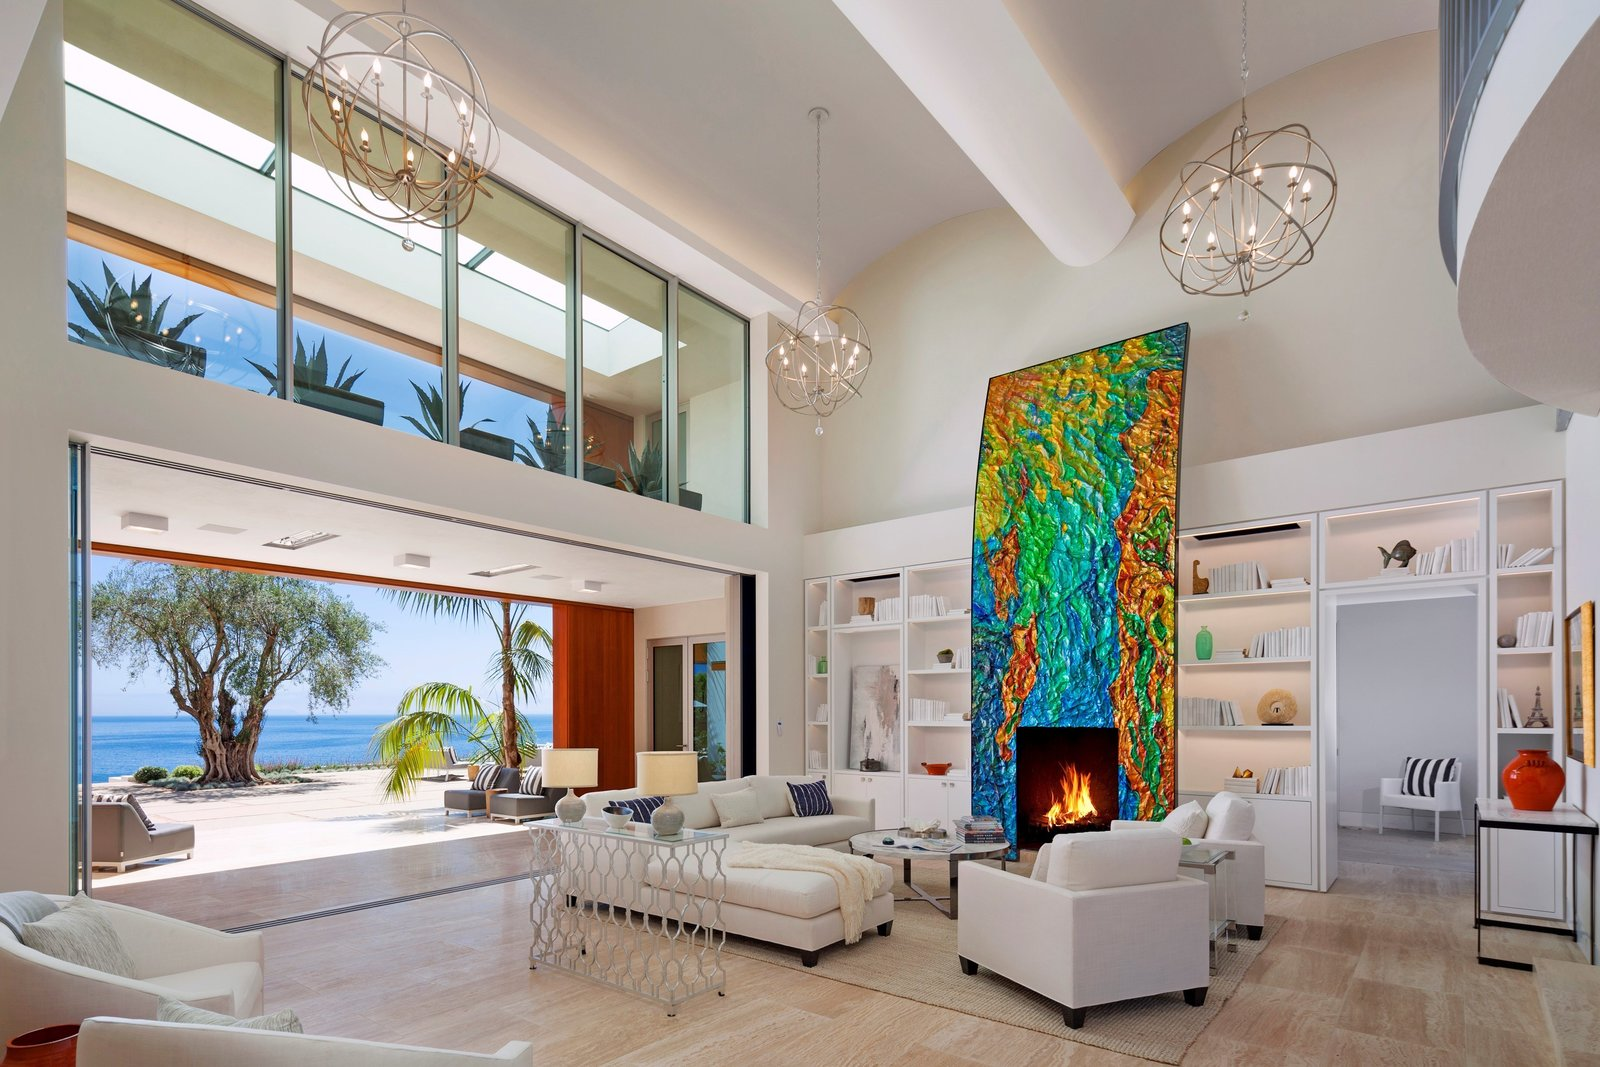 Located in the Hope Ranch neighborhood of Santa Barbara, California, this striking home sits on an almost four-acre bluff with over 200 feet of ocean contact. The art-adorned fireplace acts as the centerpiece of the living room that opens up to unobstructed views of the Pacific Ocean.  97+ Modern Fireplace Ideas by Dwell from Proof That a Modern Fireplace Can Be the Defining Factor of a Space